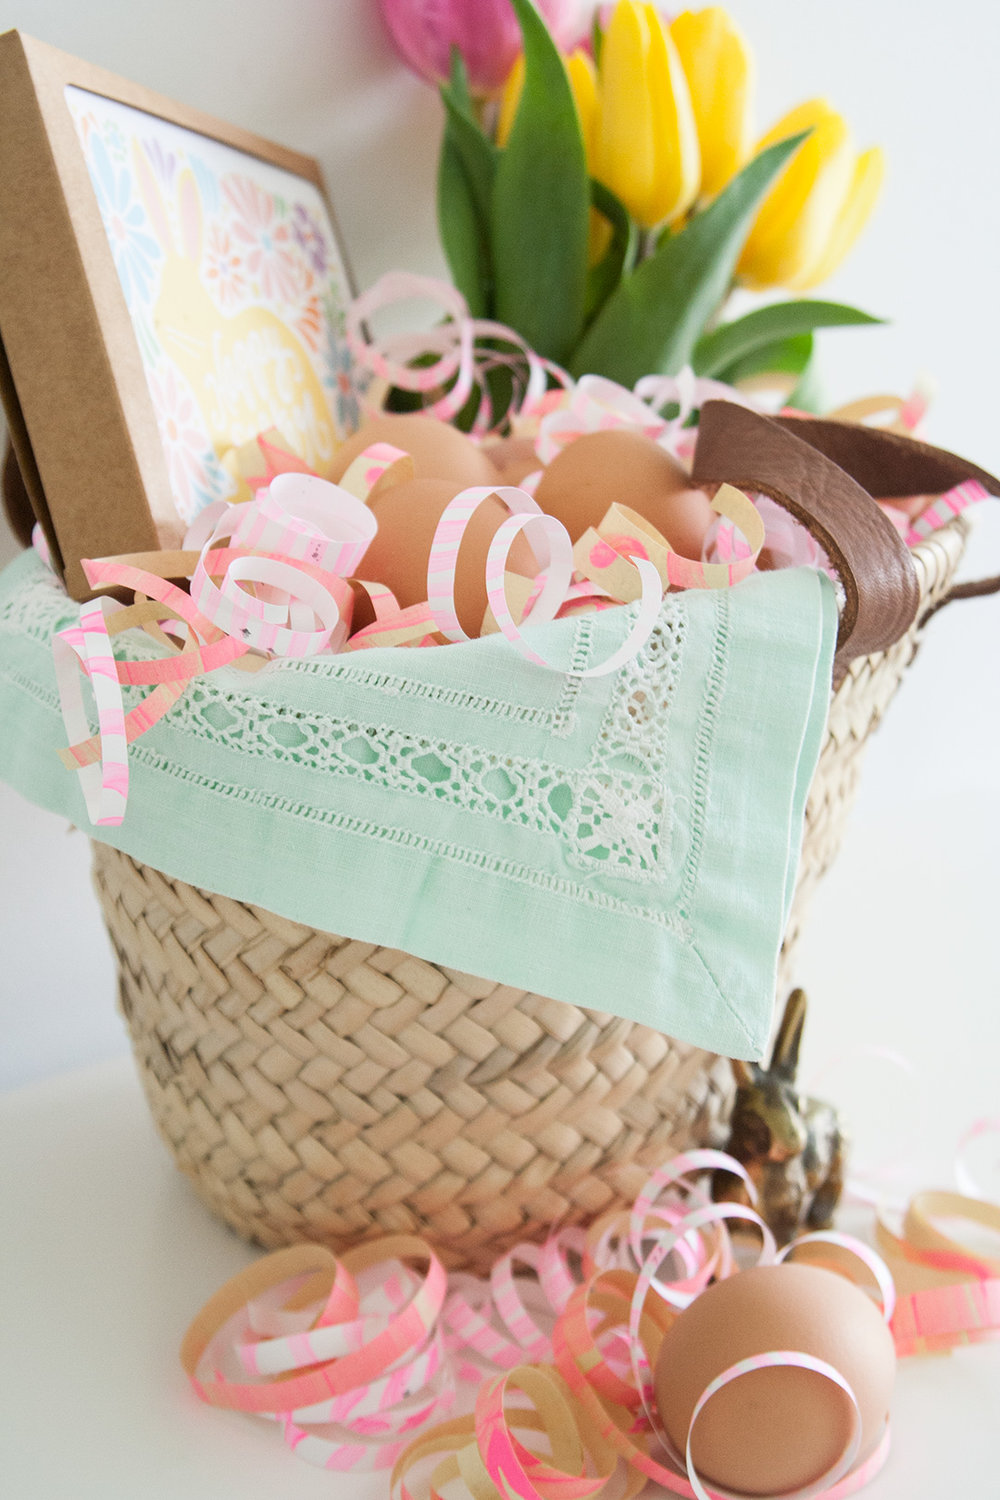 Orange-Paper-Shoppe-DIY-Eco-Friendly-Easter-Grass-14.jpg